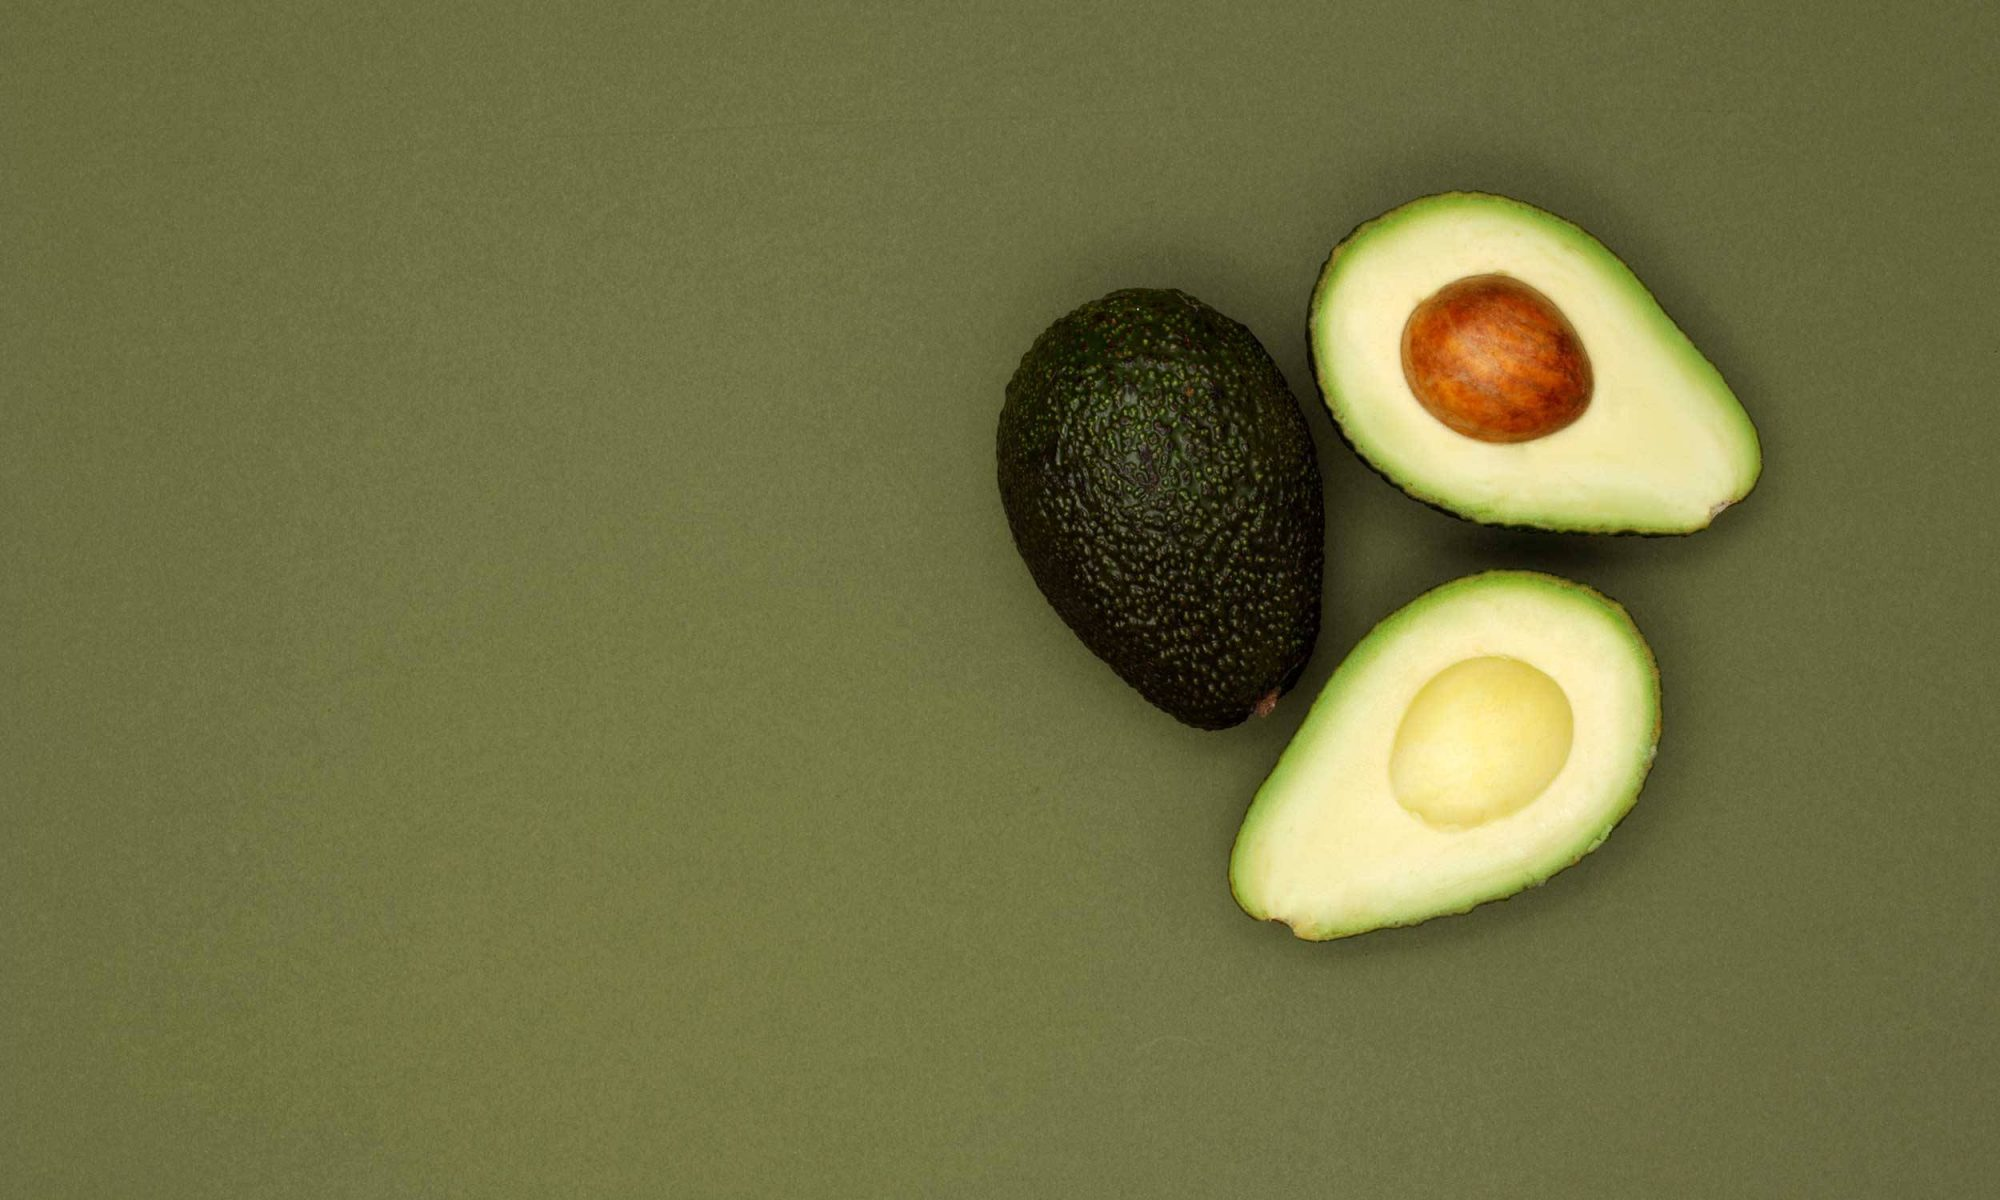 EC: How to Tell If Your Avocado Is Ripe